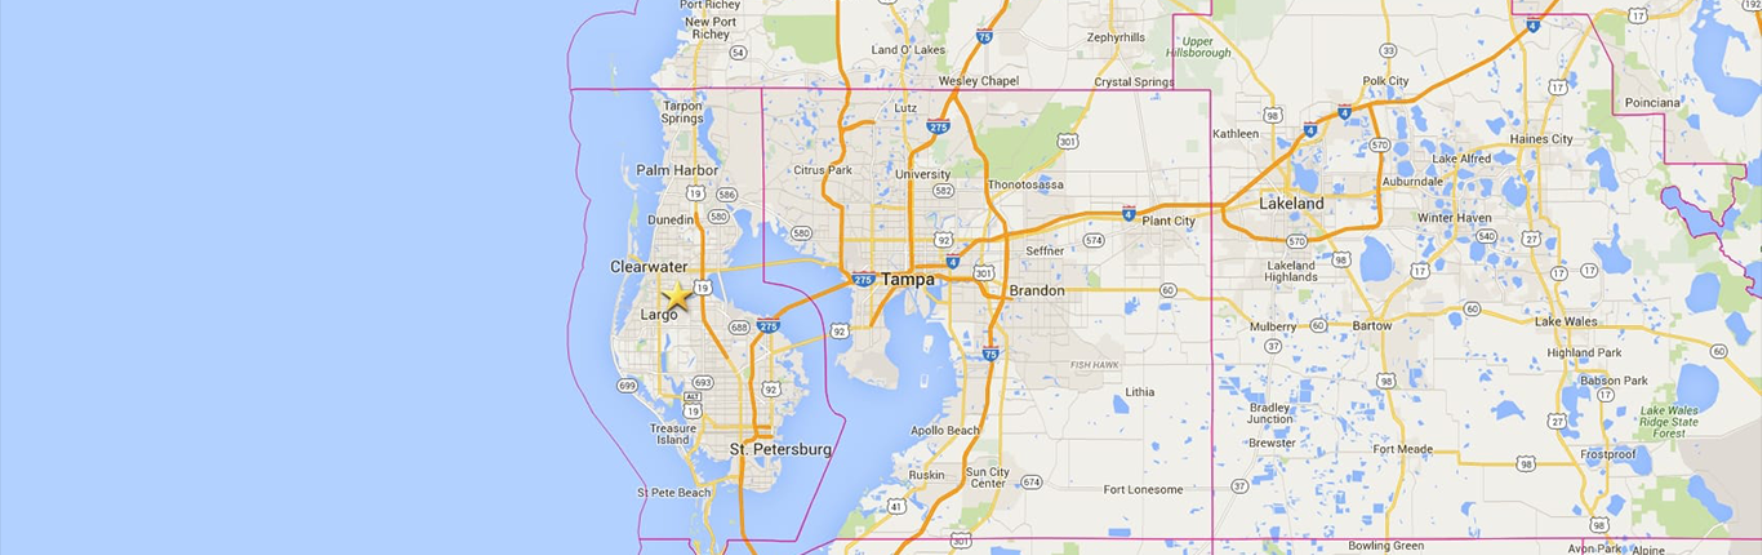 Areas we Serve in Tampa Bay